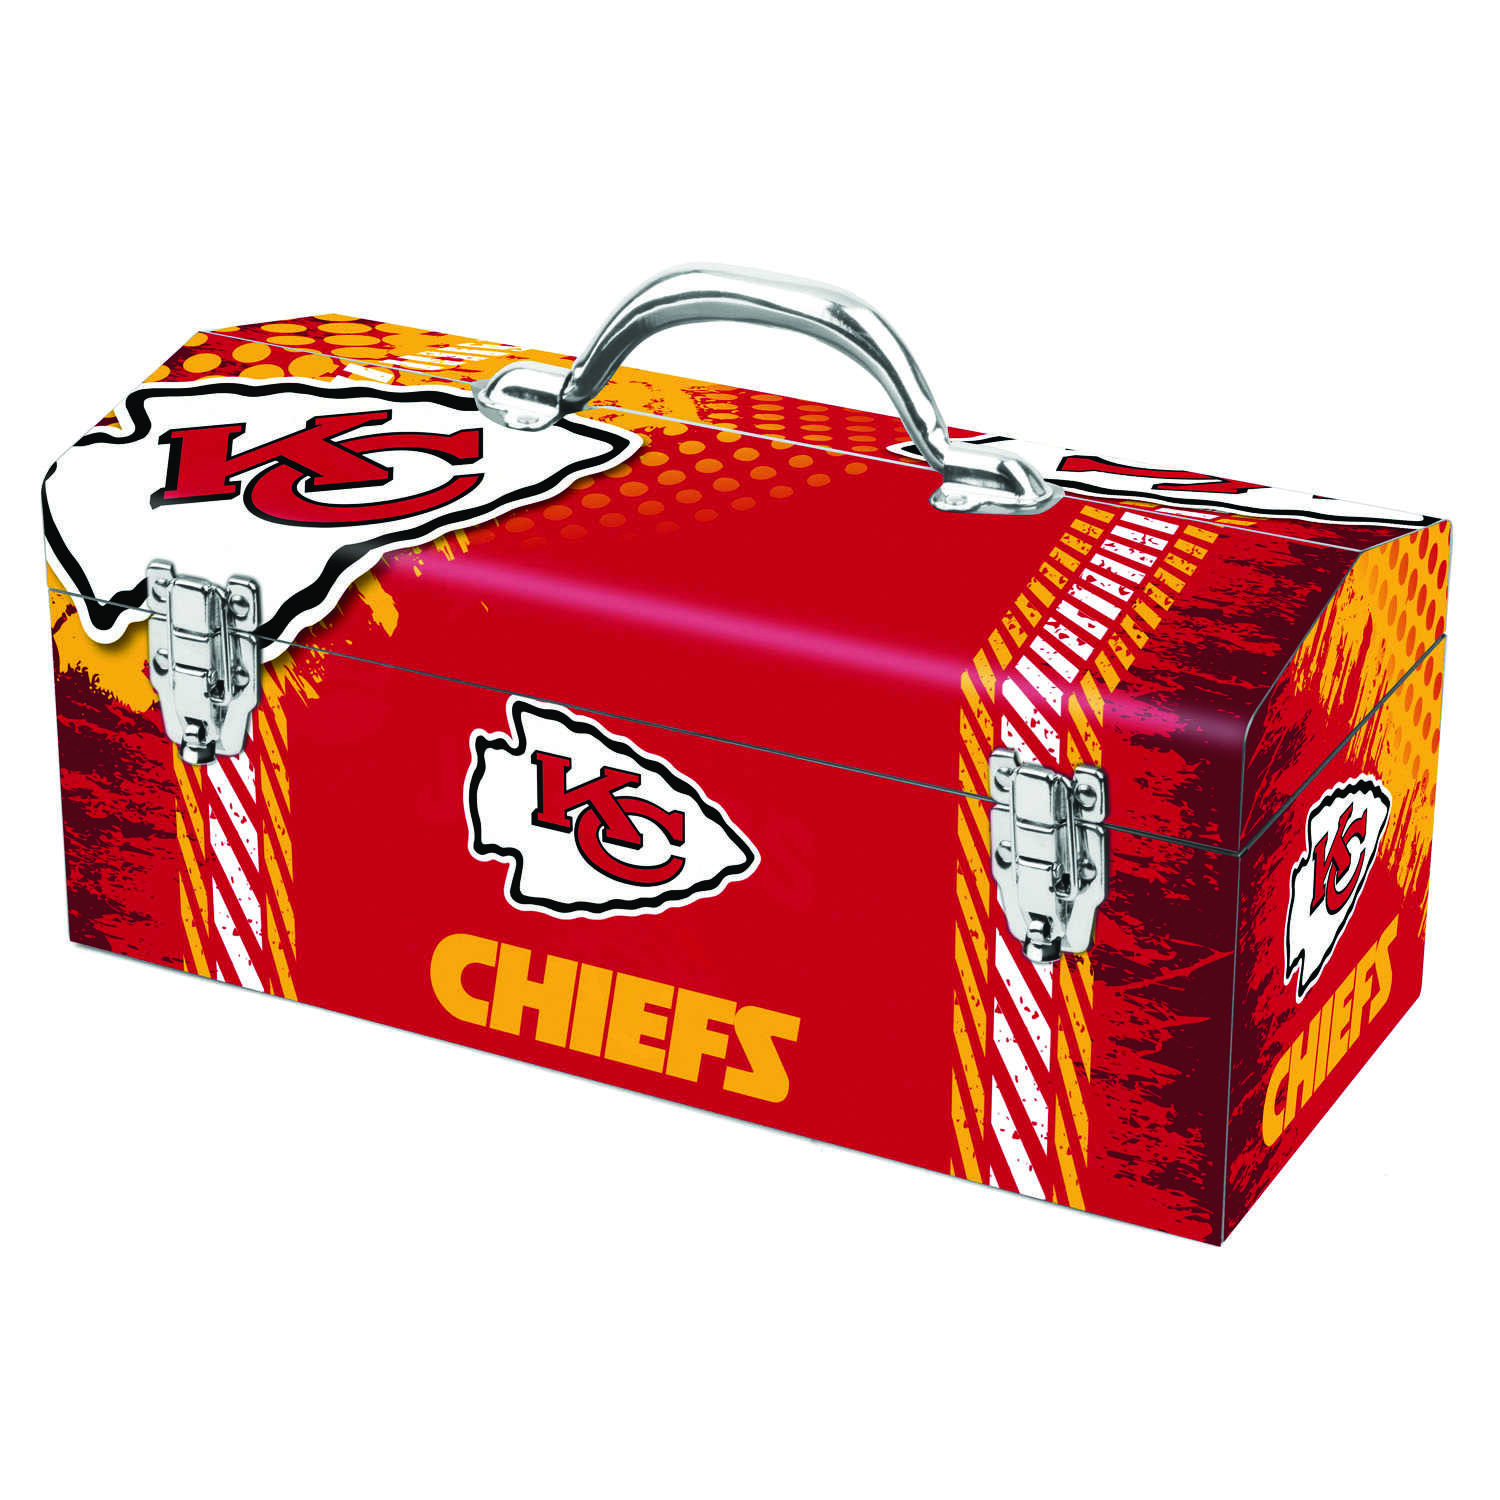 Sainty International  16.25 in. Steel  Kansas City Chiefs  Art Deco Tool Box  7.1 in. W x 7.75 in. H